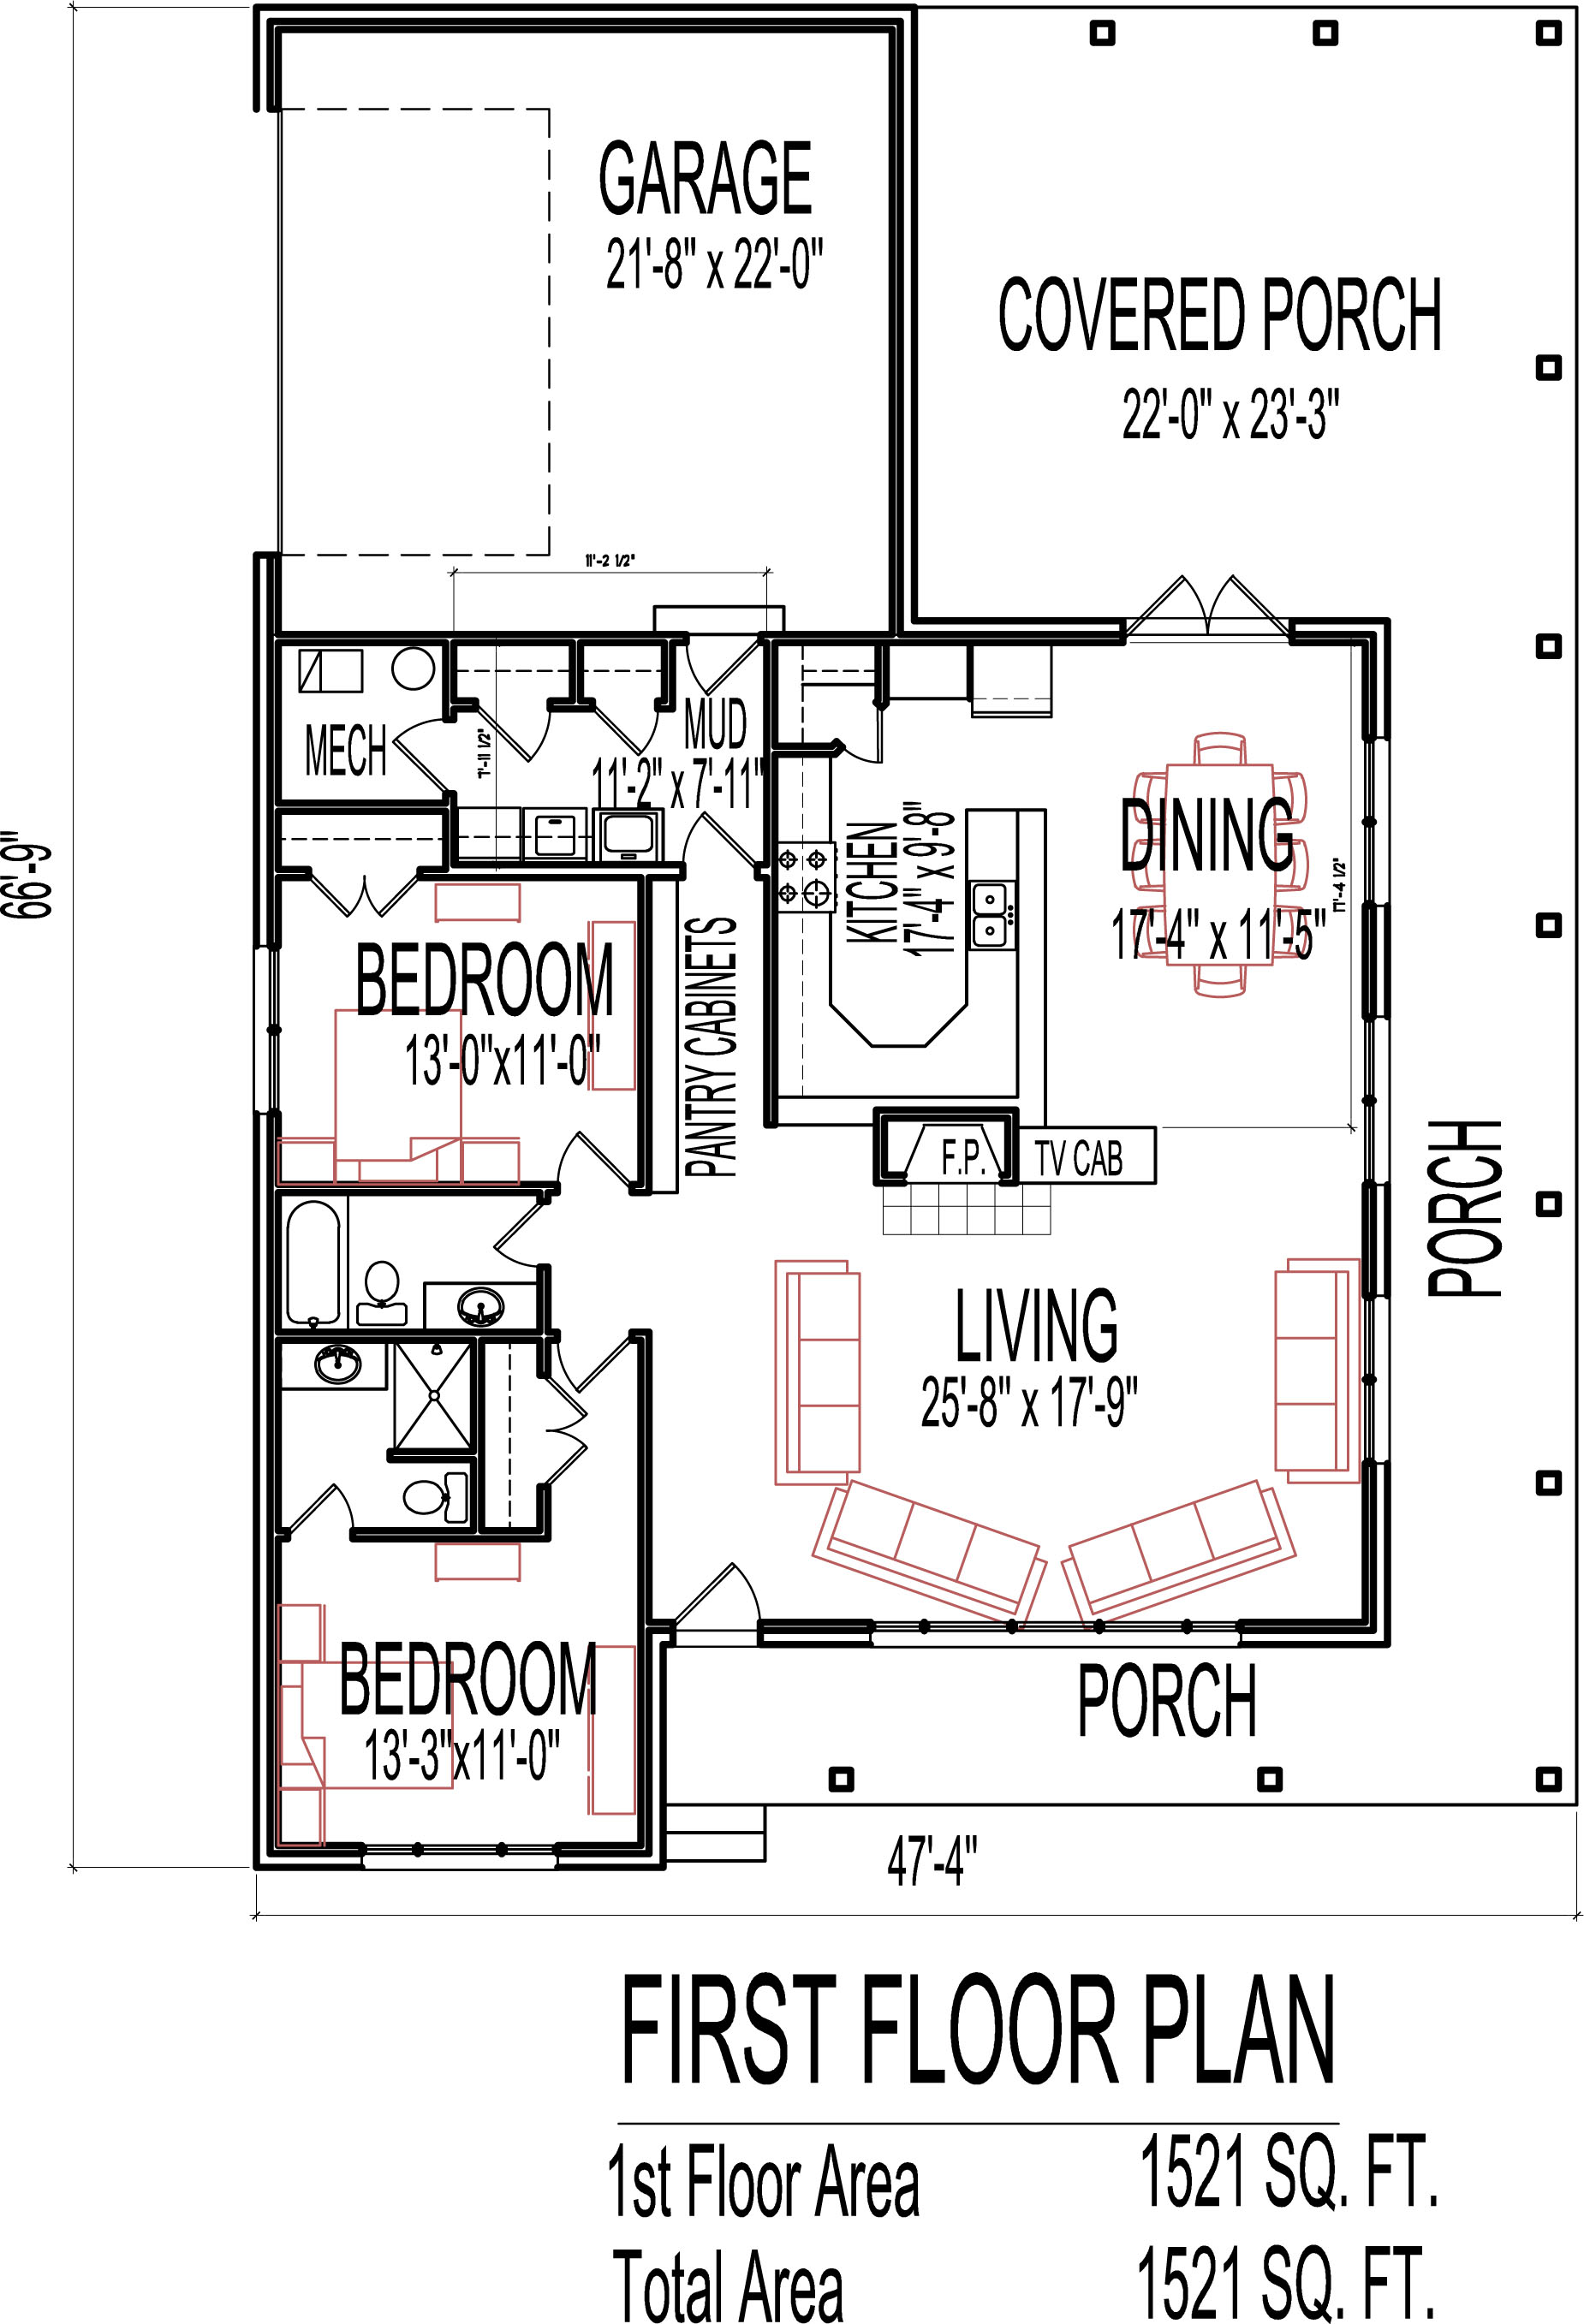 2 bedroom 1 story stone cottage house plans 1500 sf louisville kentucky lexington buffalo rochester new